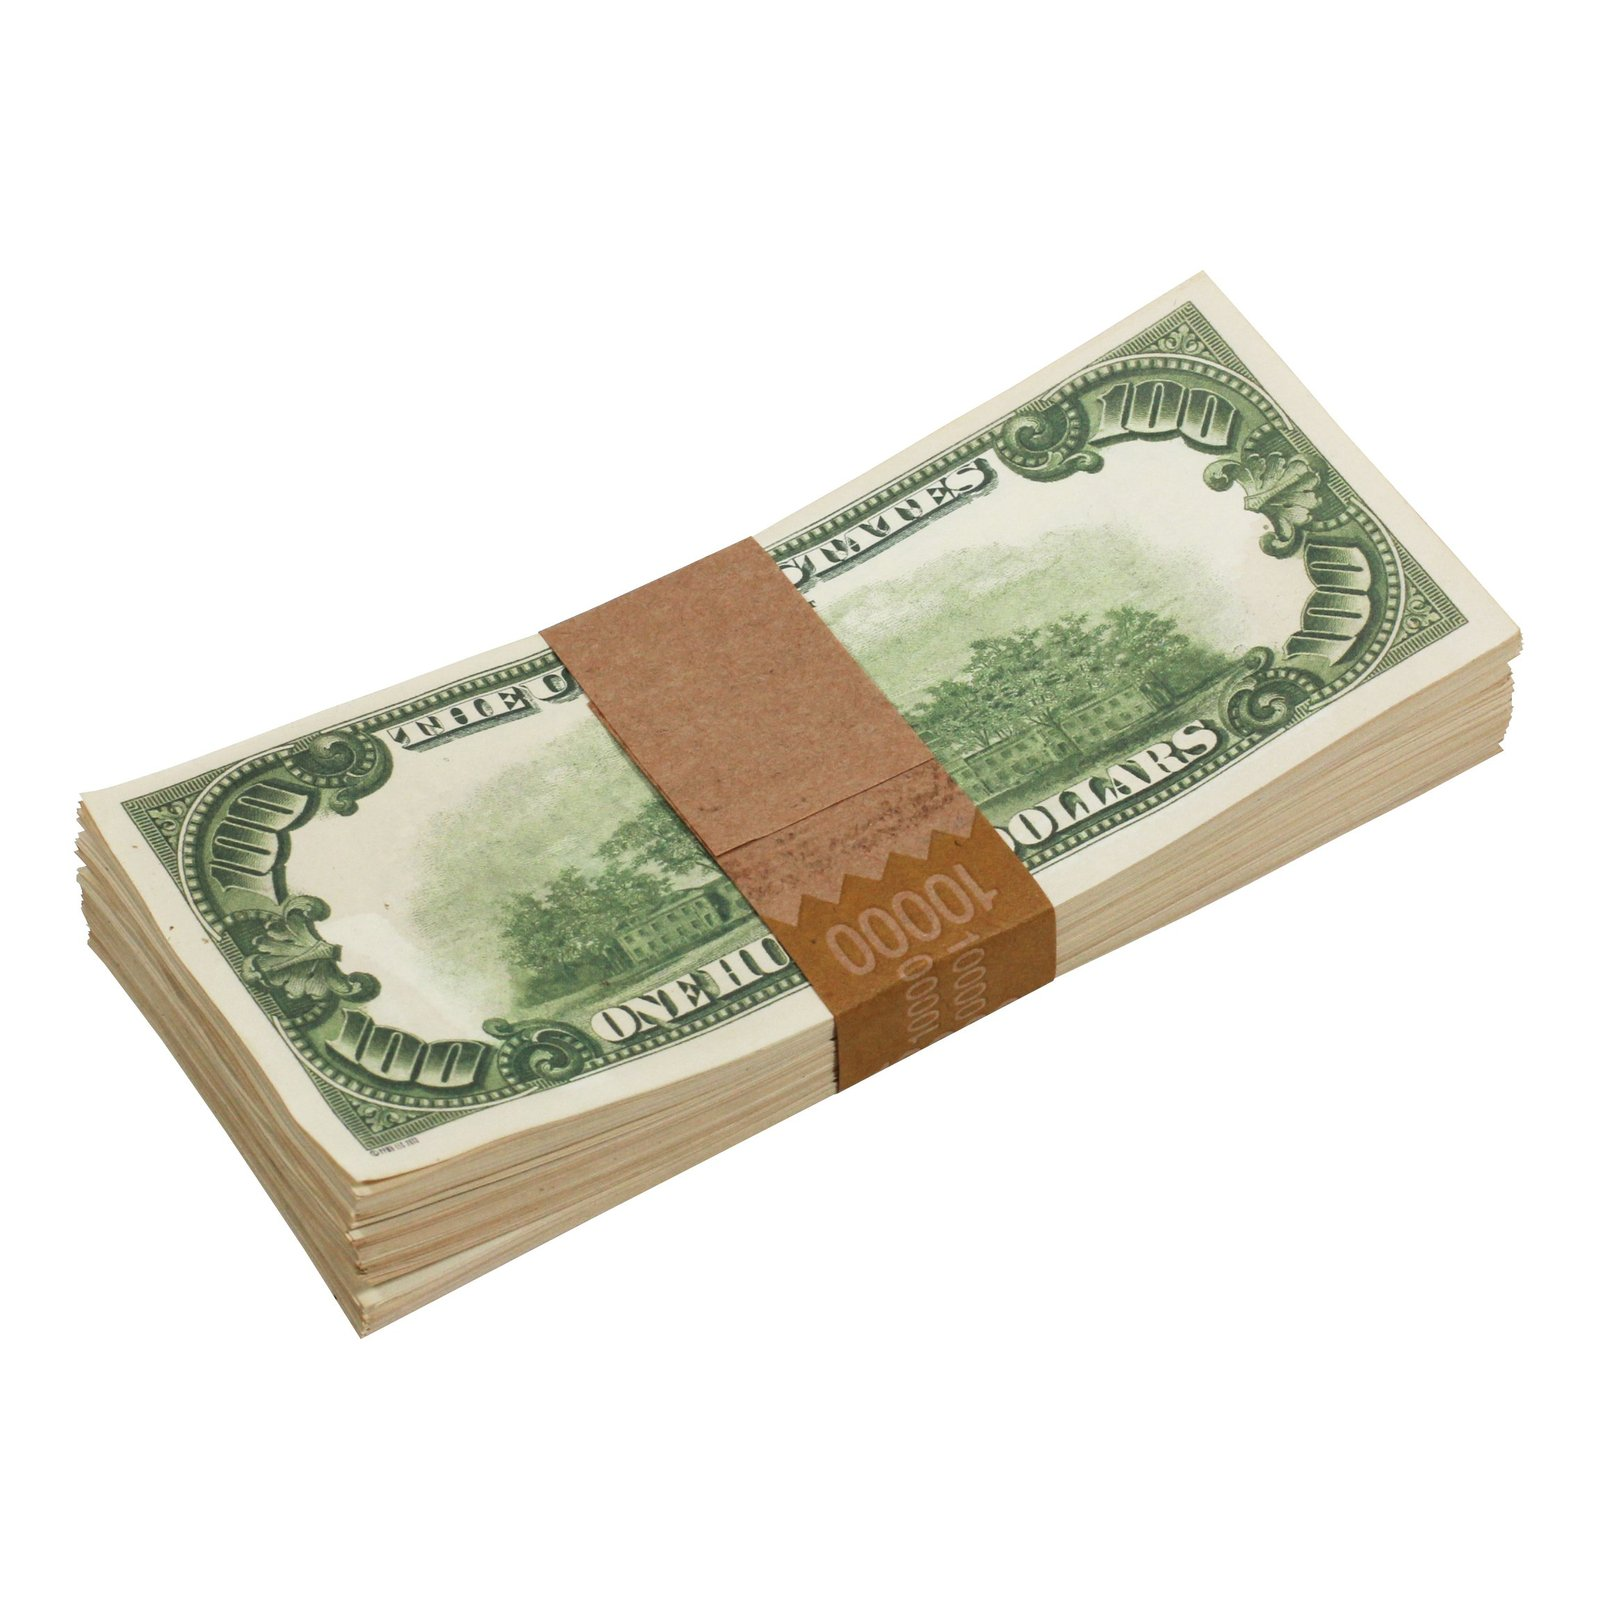 1980s Series $100s Aged $1,000,000 Full Print Package Realistic Prop Money image 5